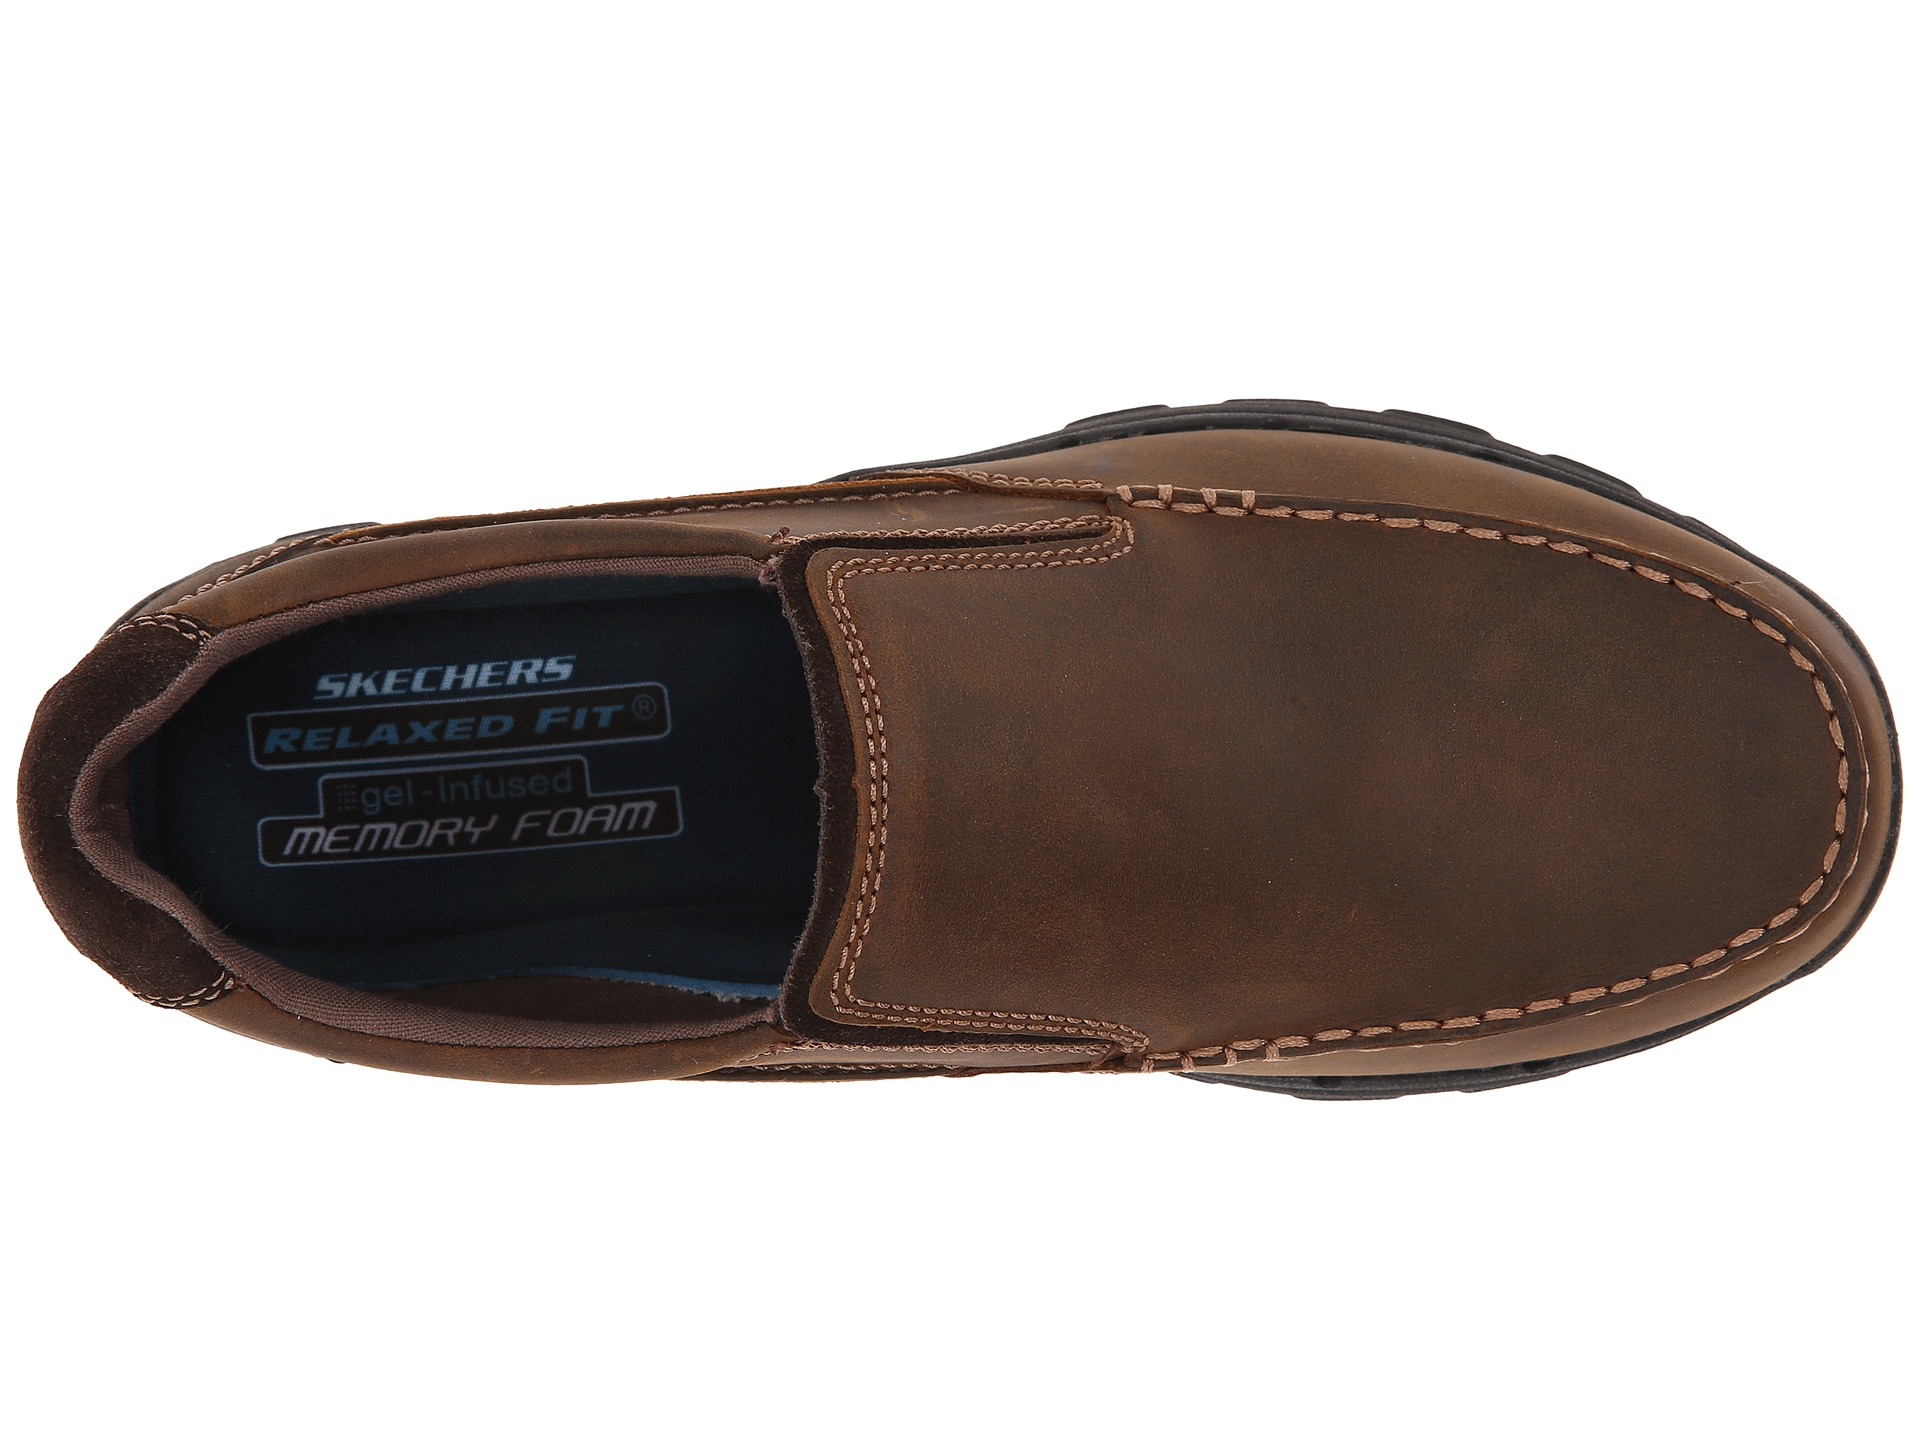 Caramelo Cintura difícil  skechers relaxed fit gel infused memory foam mens Sale,up to 51% Discounts